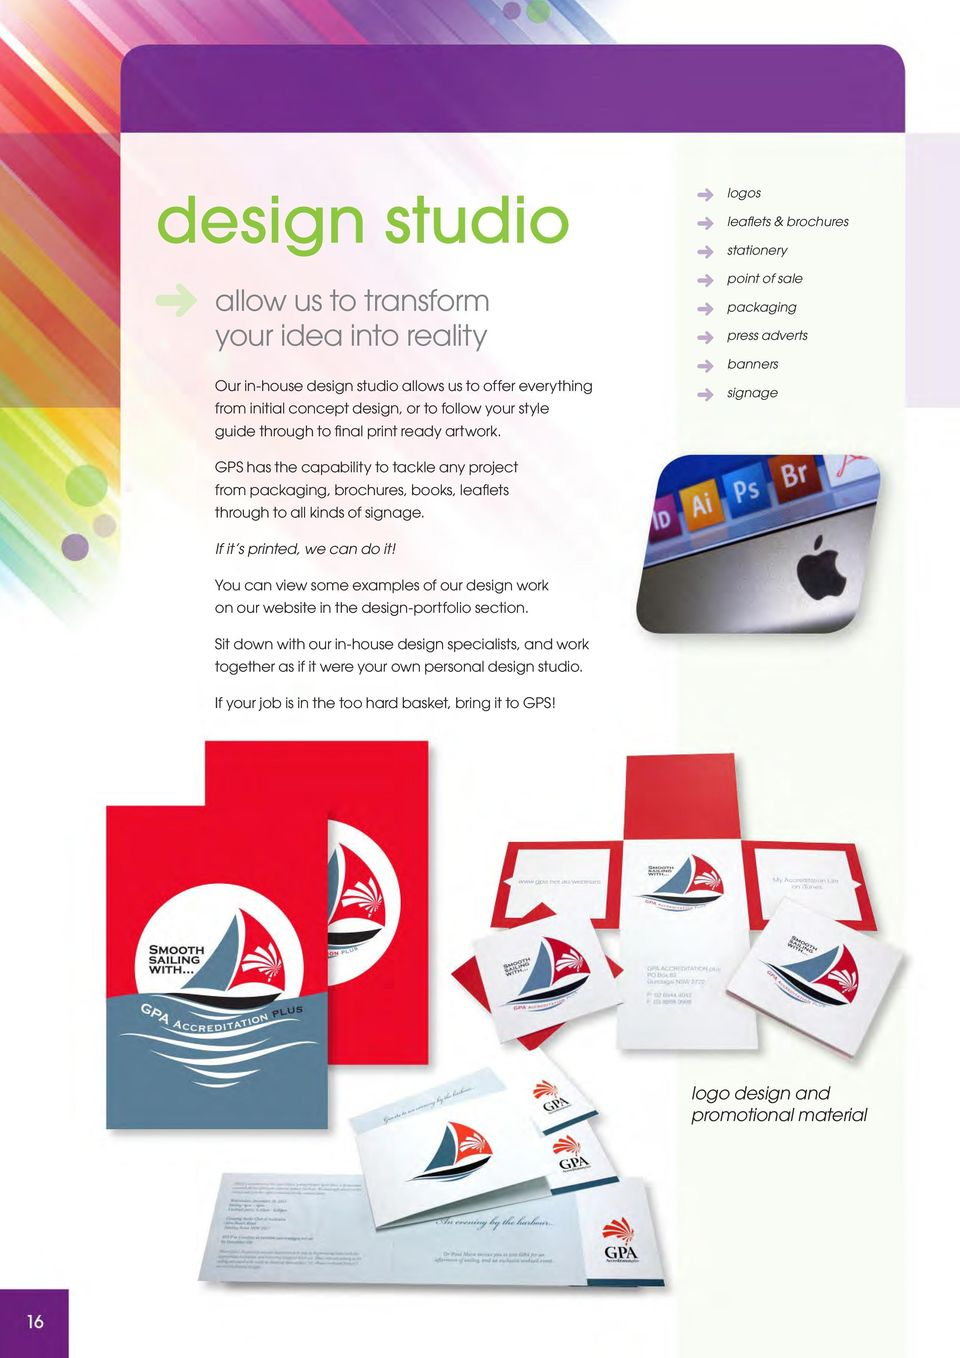 logos leaflets & brochures stationery point of sale packaging press adverts banners signage GPS has the capability to tackle any project from packaging, brochures, books, leaflets through